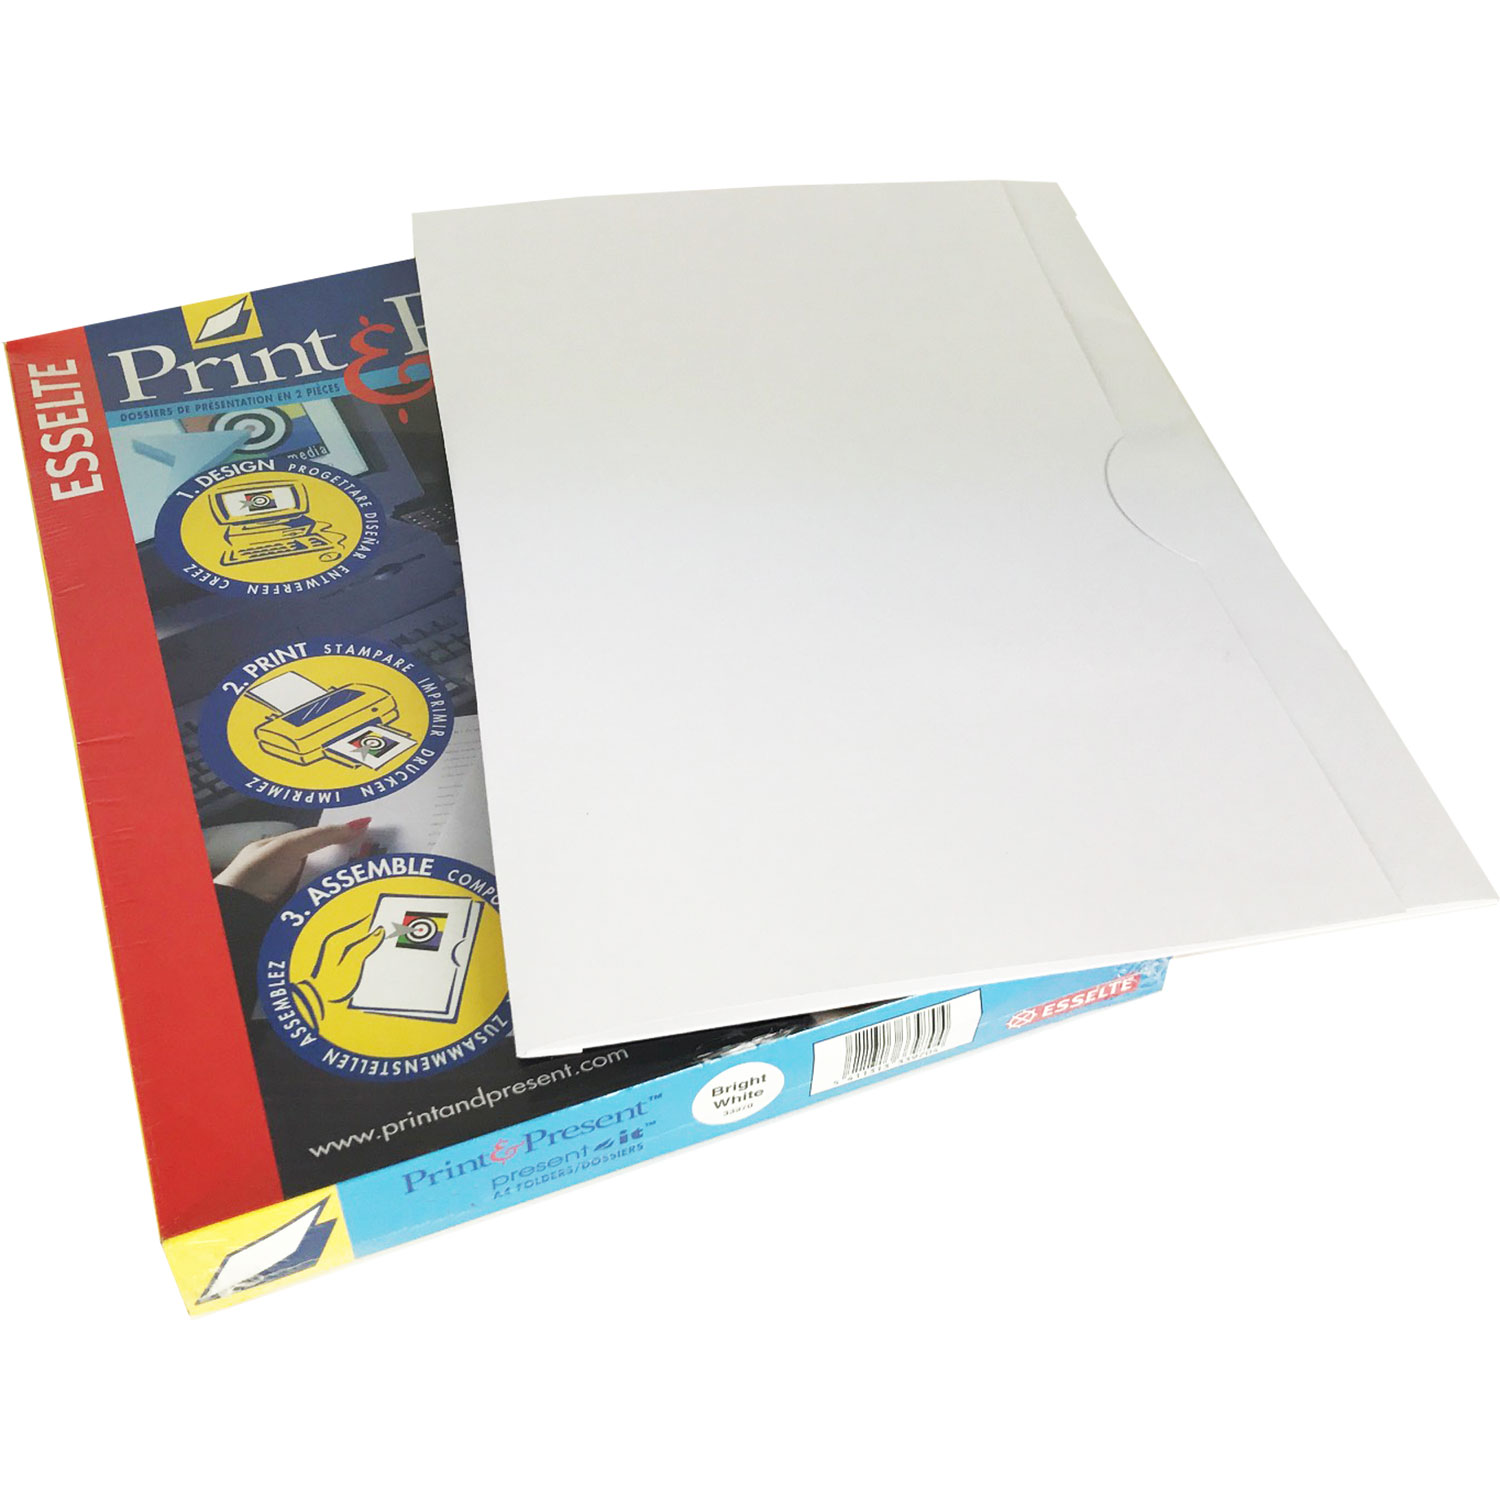 Print & Present-It Presentation Folders Bright-White (100)